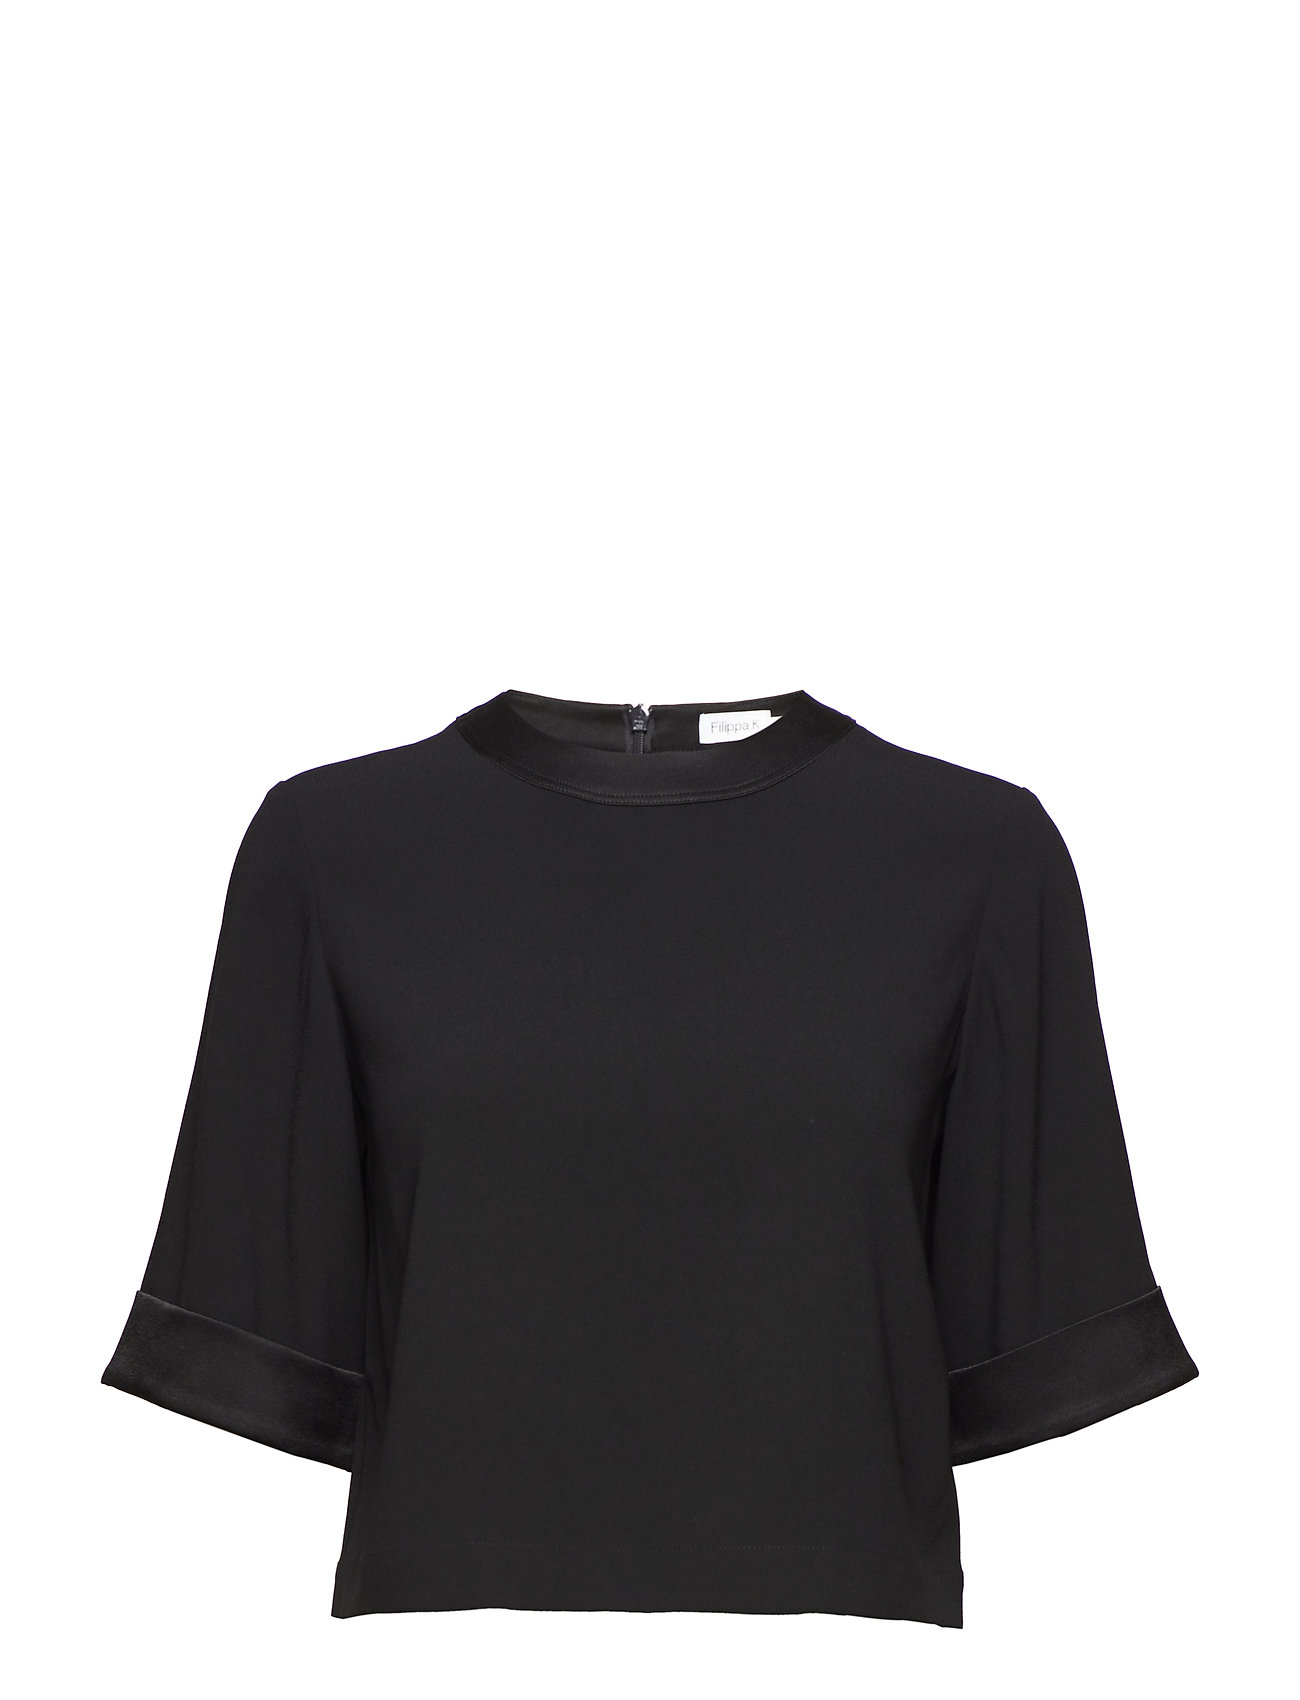 Filippa K Cropped Top Ögrönlar